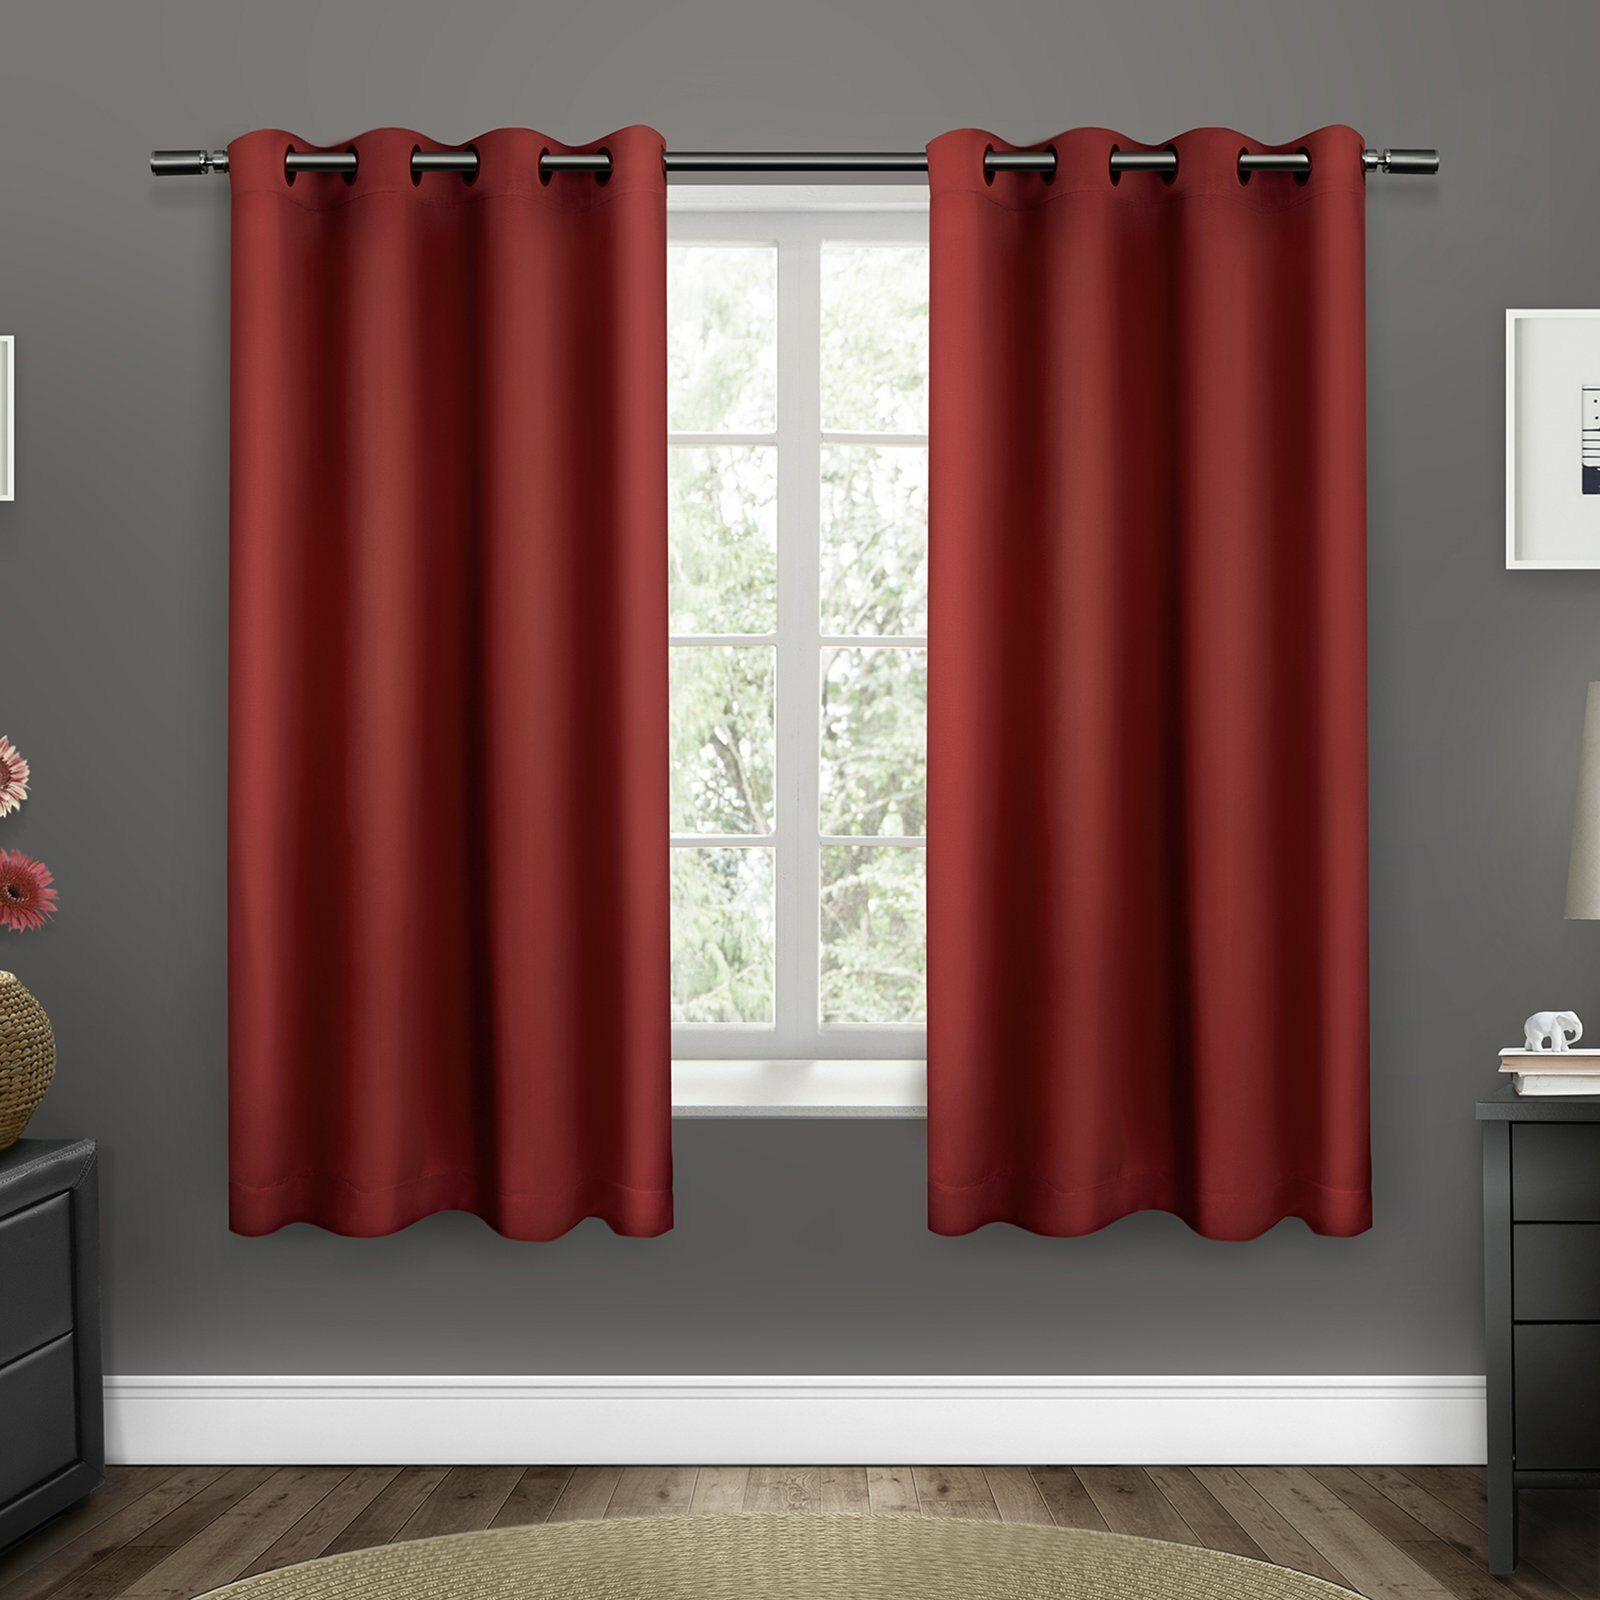 Upc 642472006601 – Exclusive Home Sateen Twill Weave Grommet With Regard To Sateen Twill Weave Insulated Blackout Window Curtain Panel Pairs (View 19 of 20)